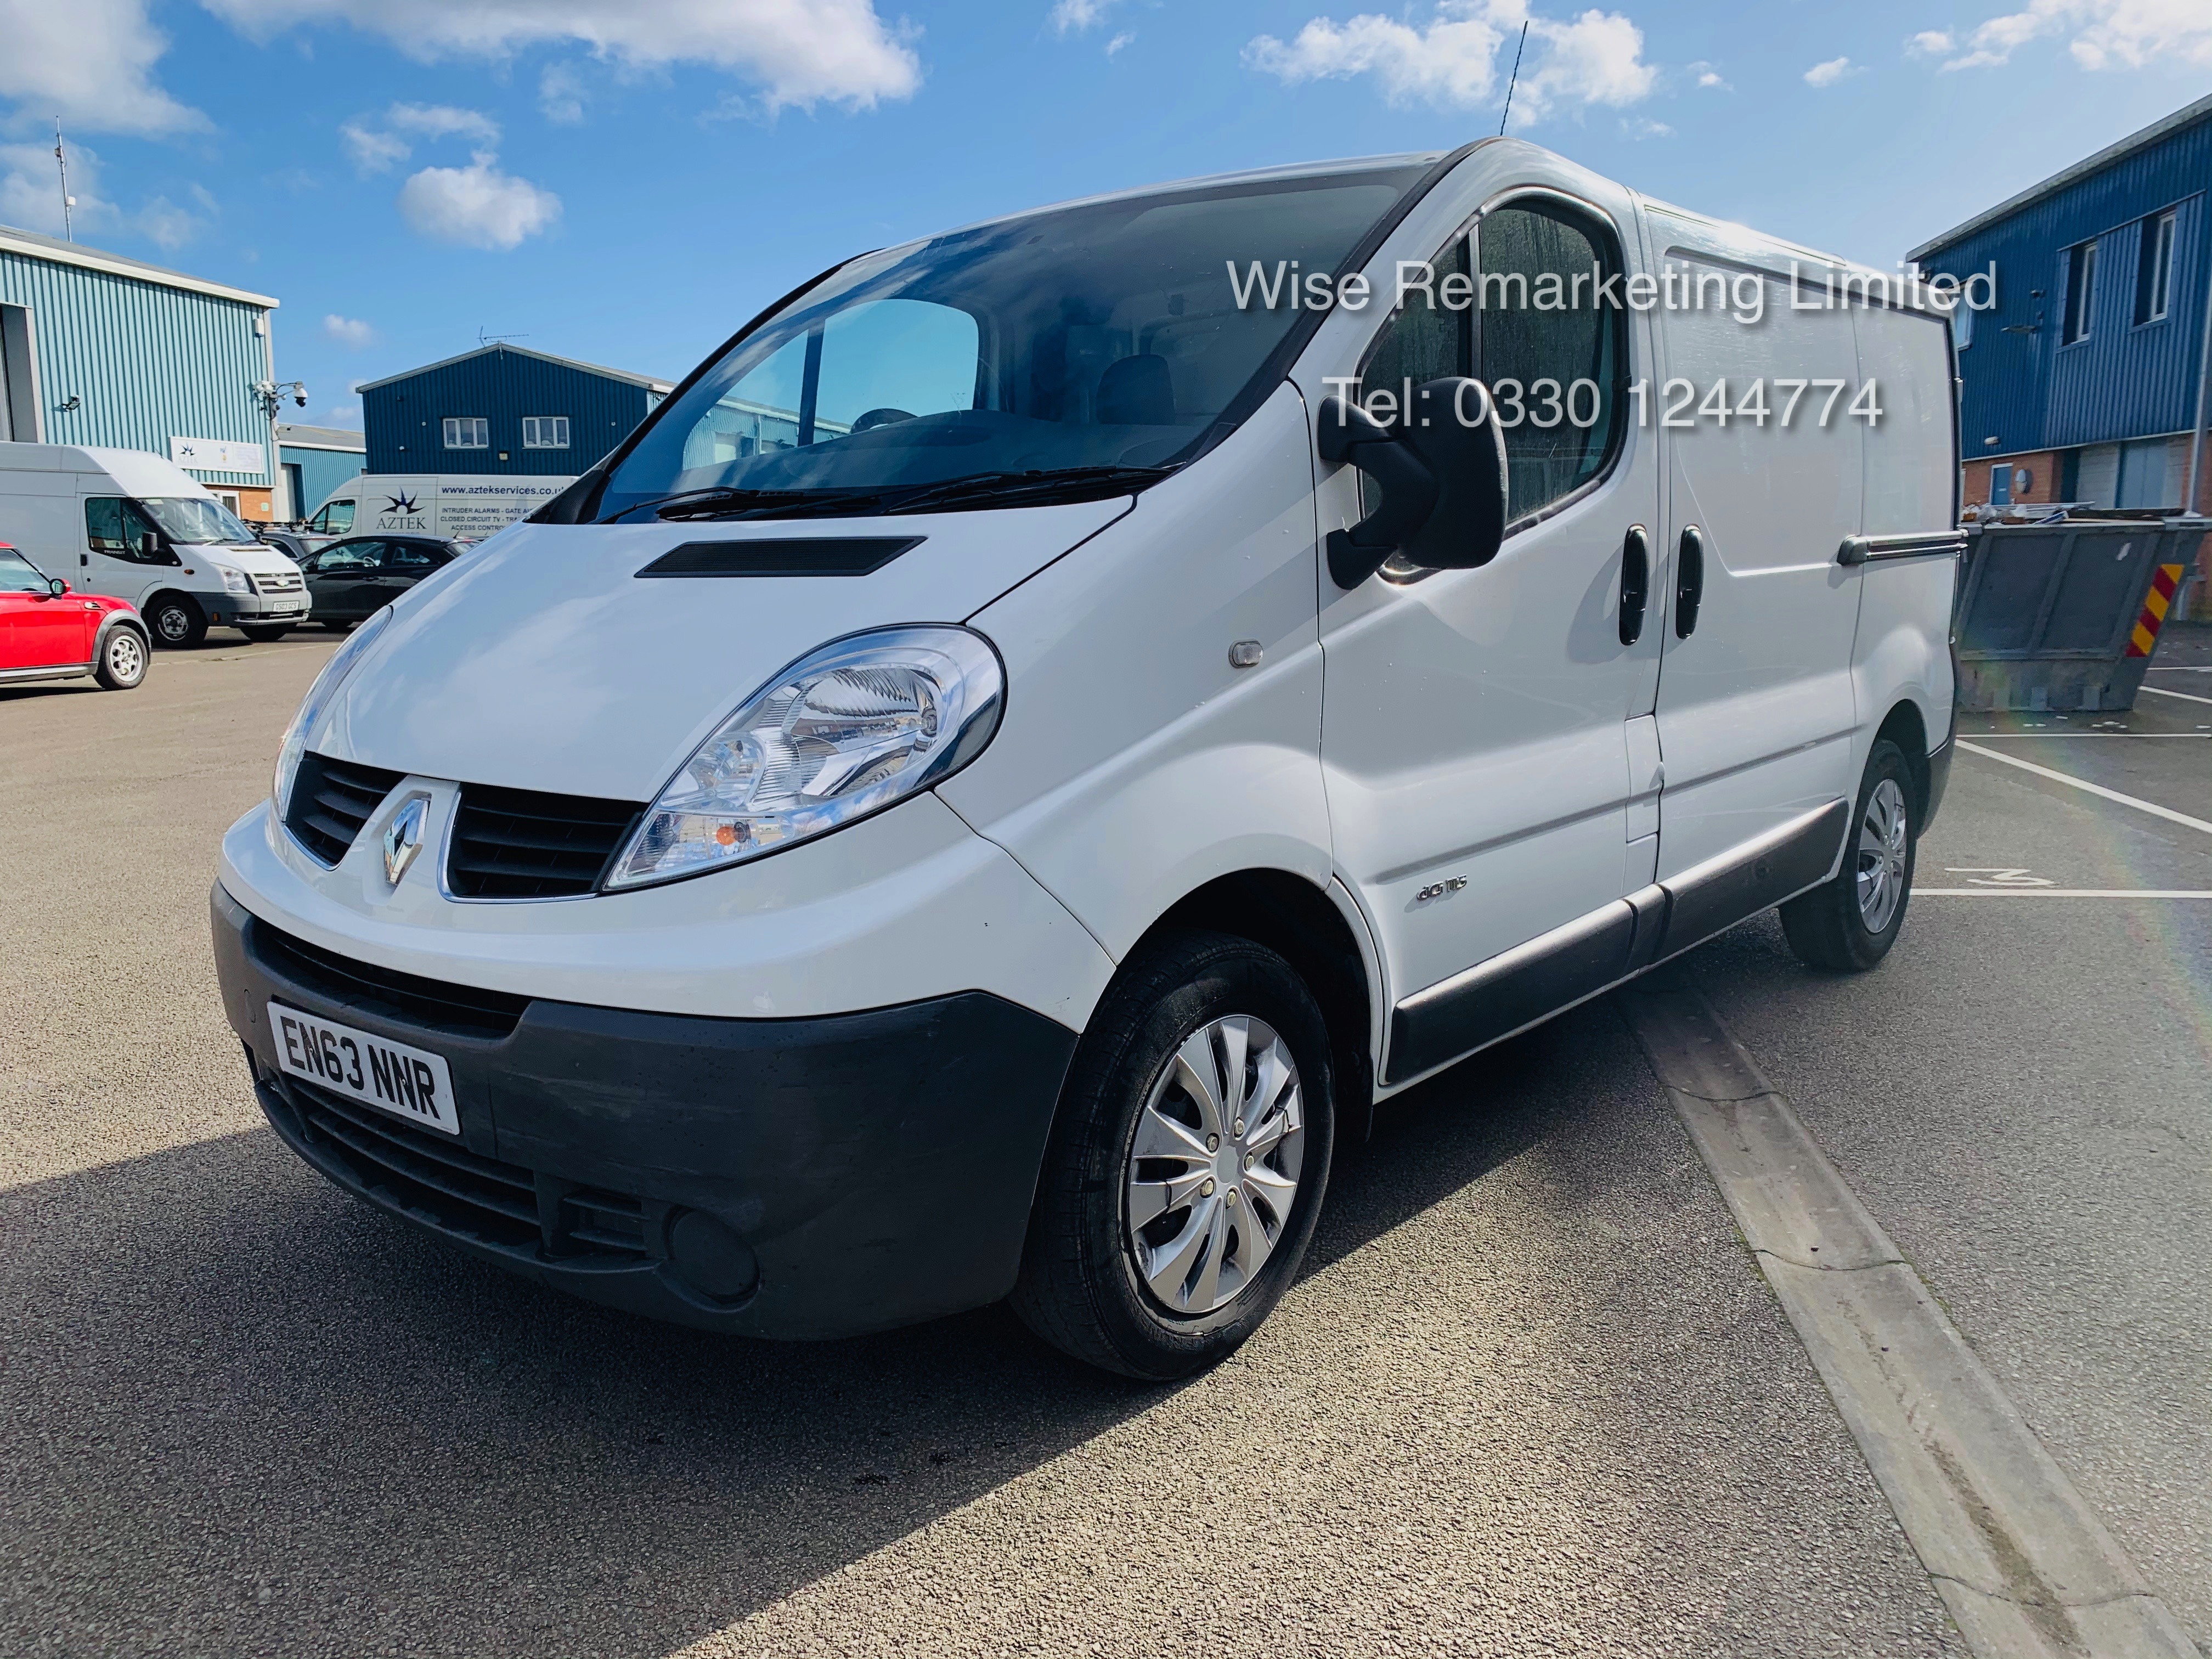 Renault Trafic 2.0 DCI (115 BHP) - 6 Speed - 2014 Reg - Ply Lined - - Image 3 of 21